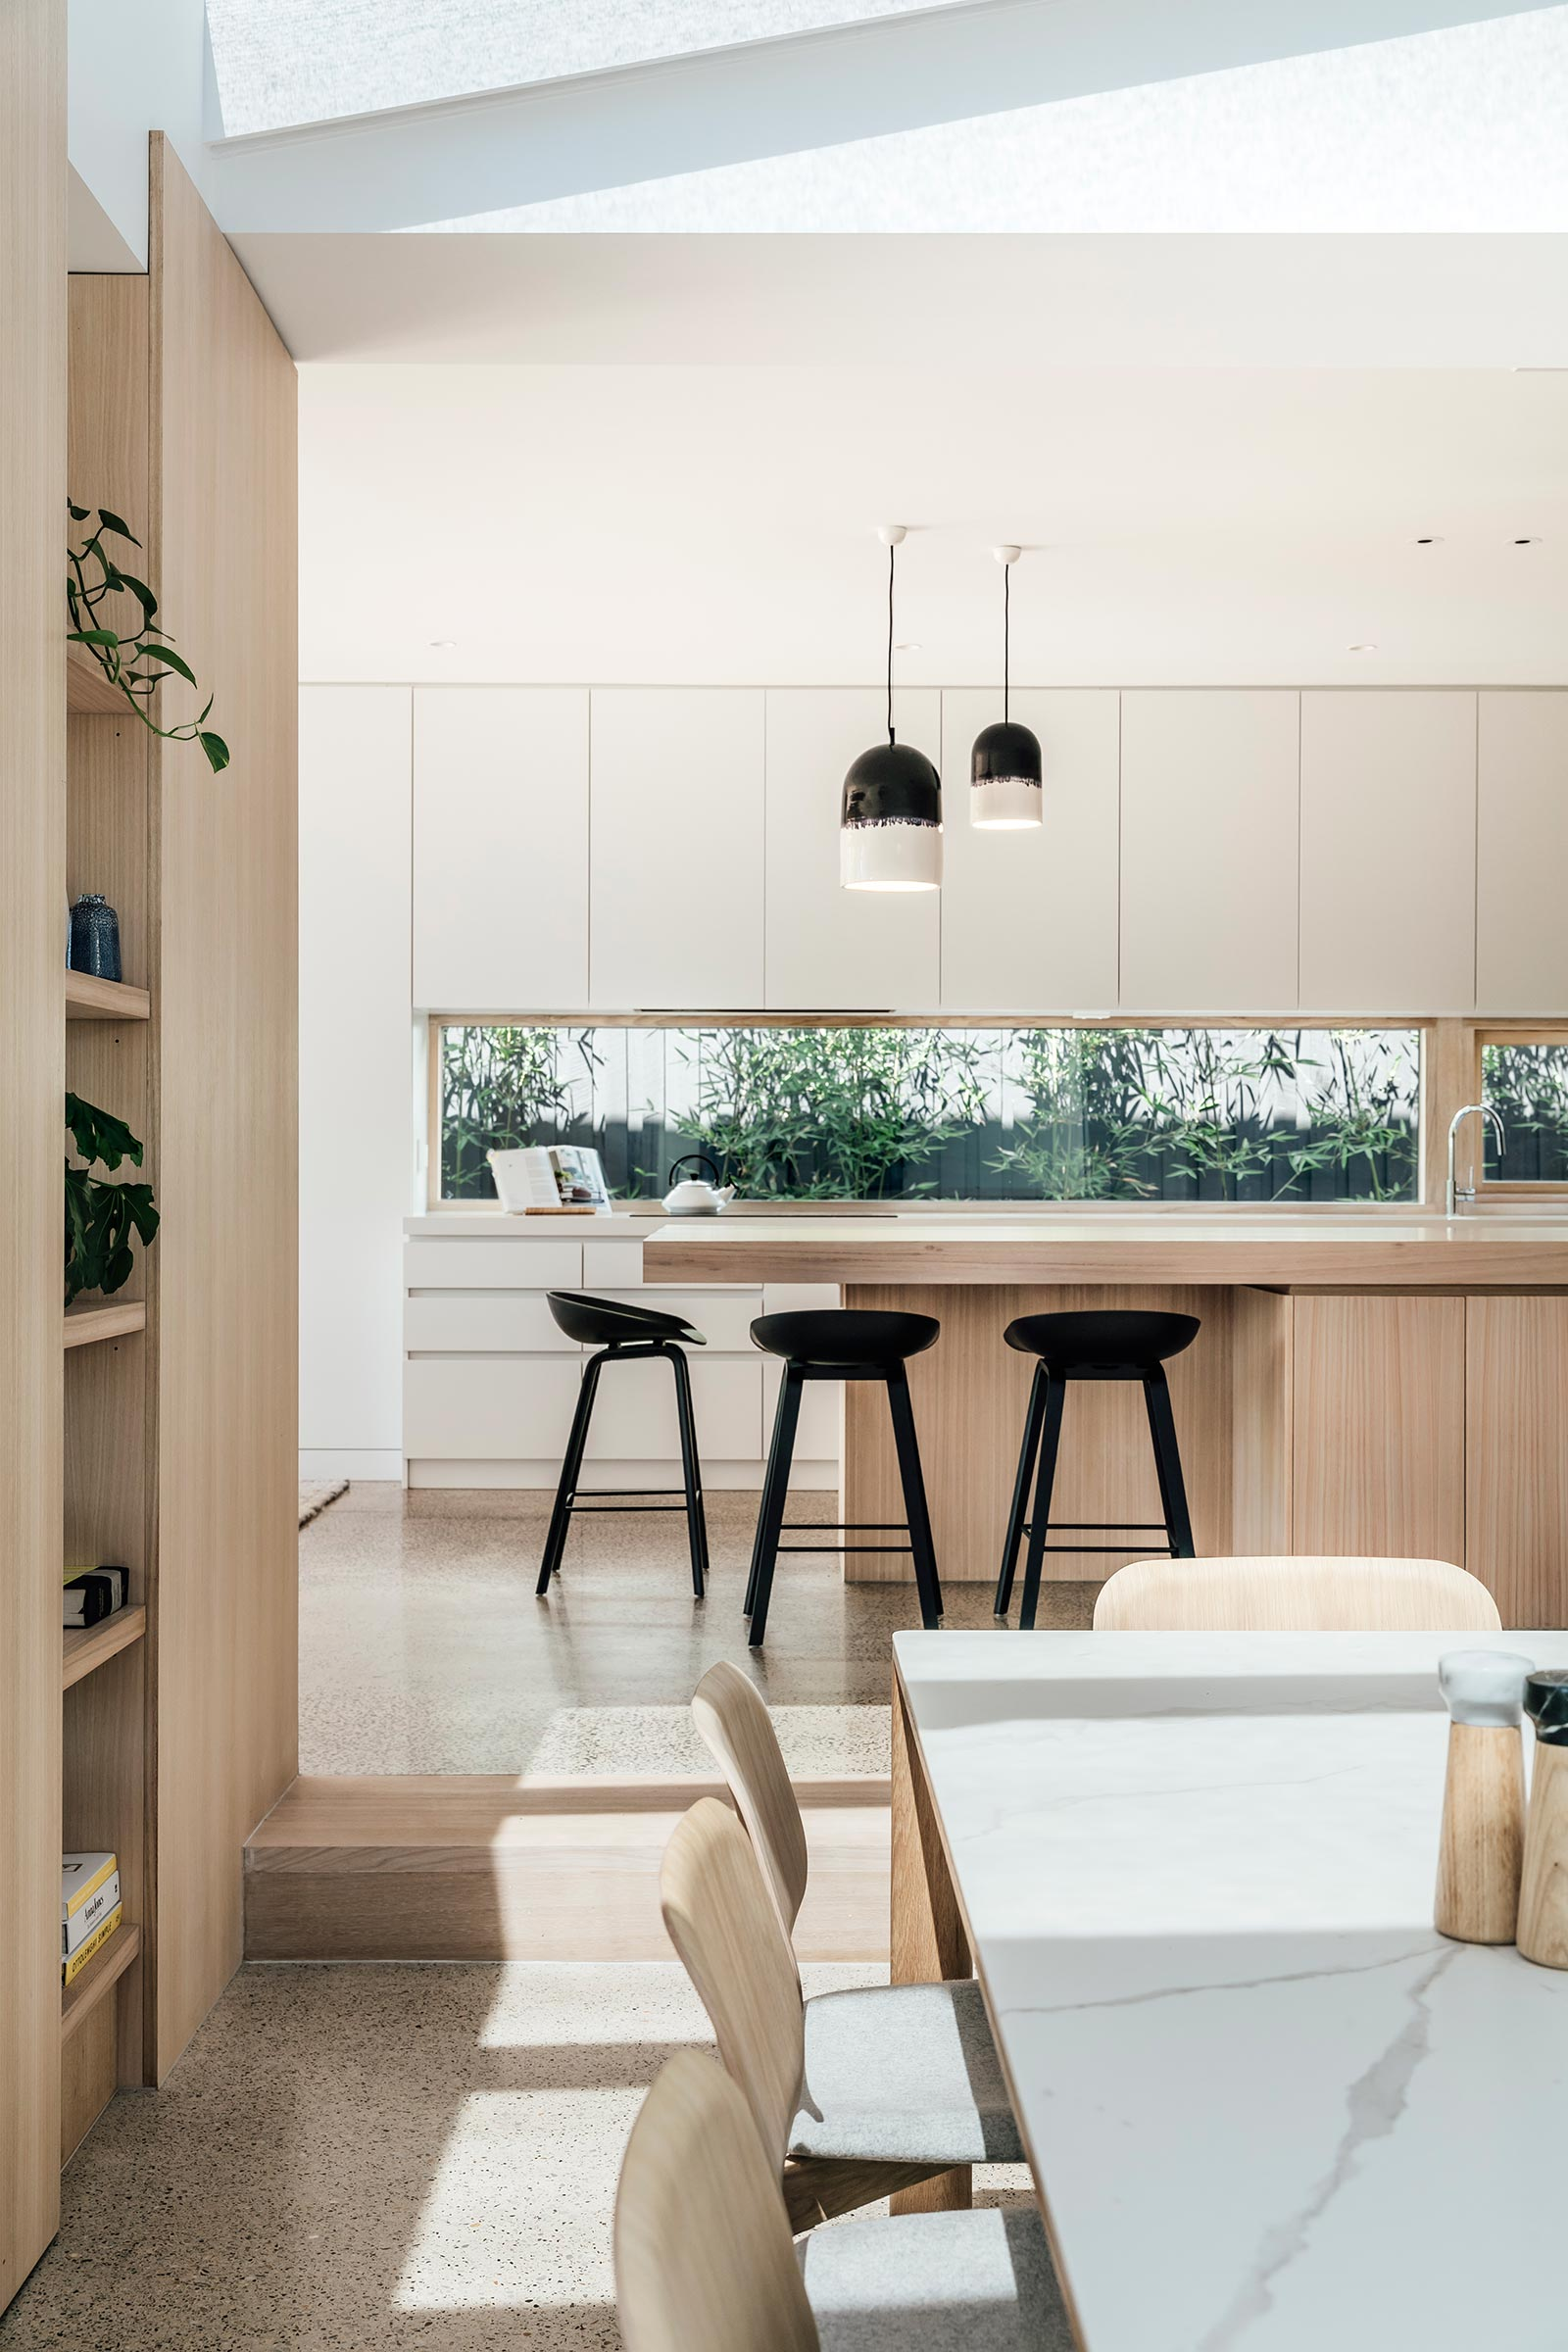 A modern kitchen with minimalist white and wood cabinets, and a window that acts as a backsplash.